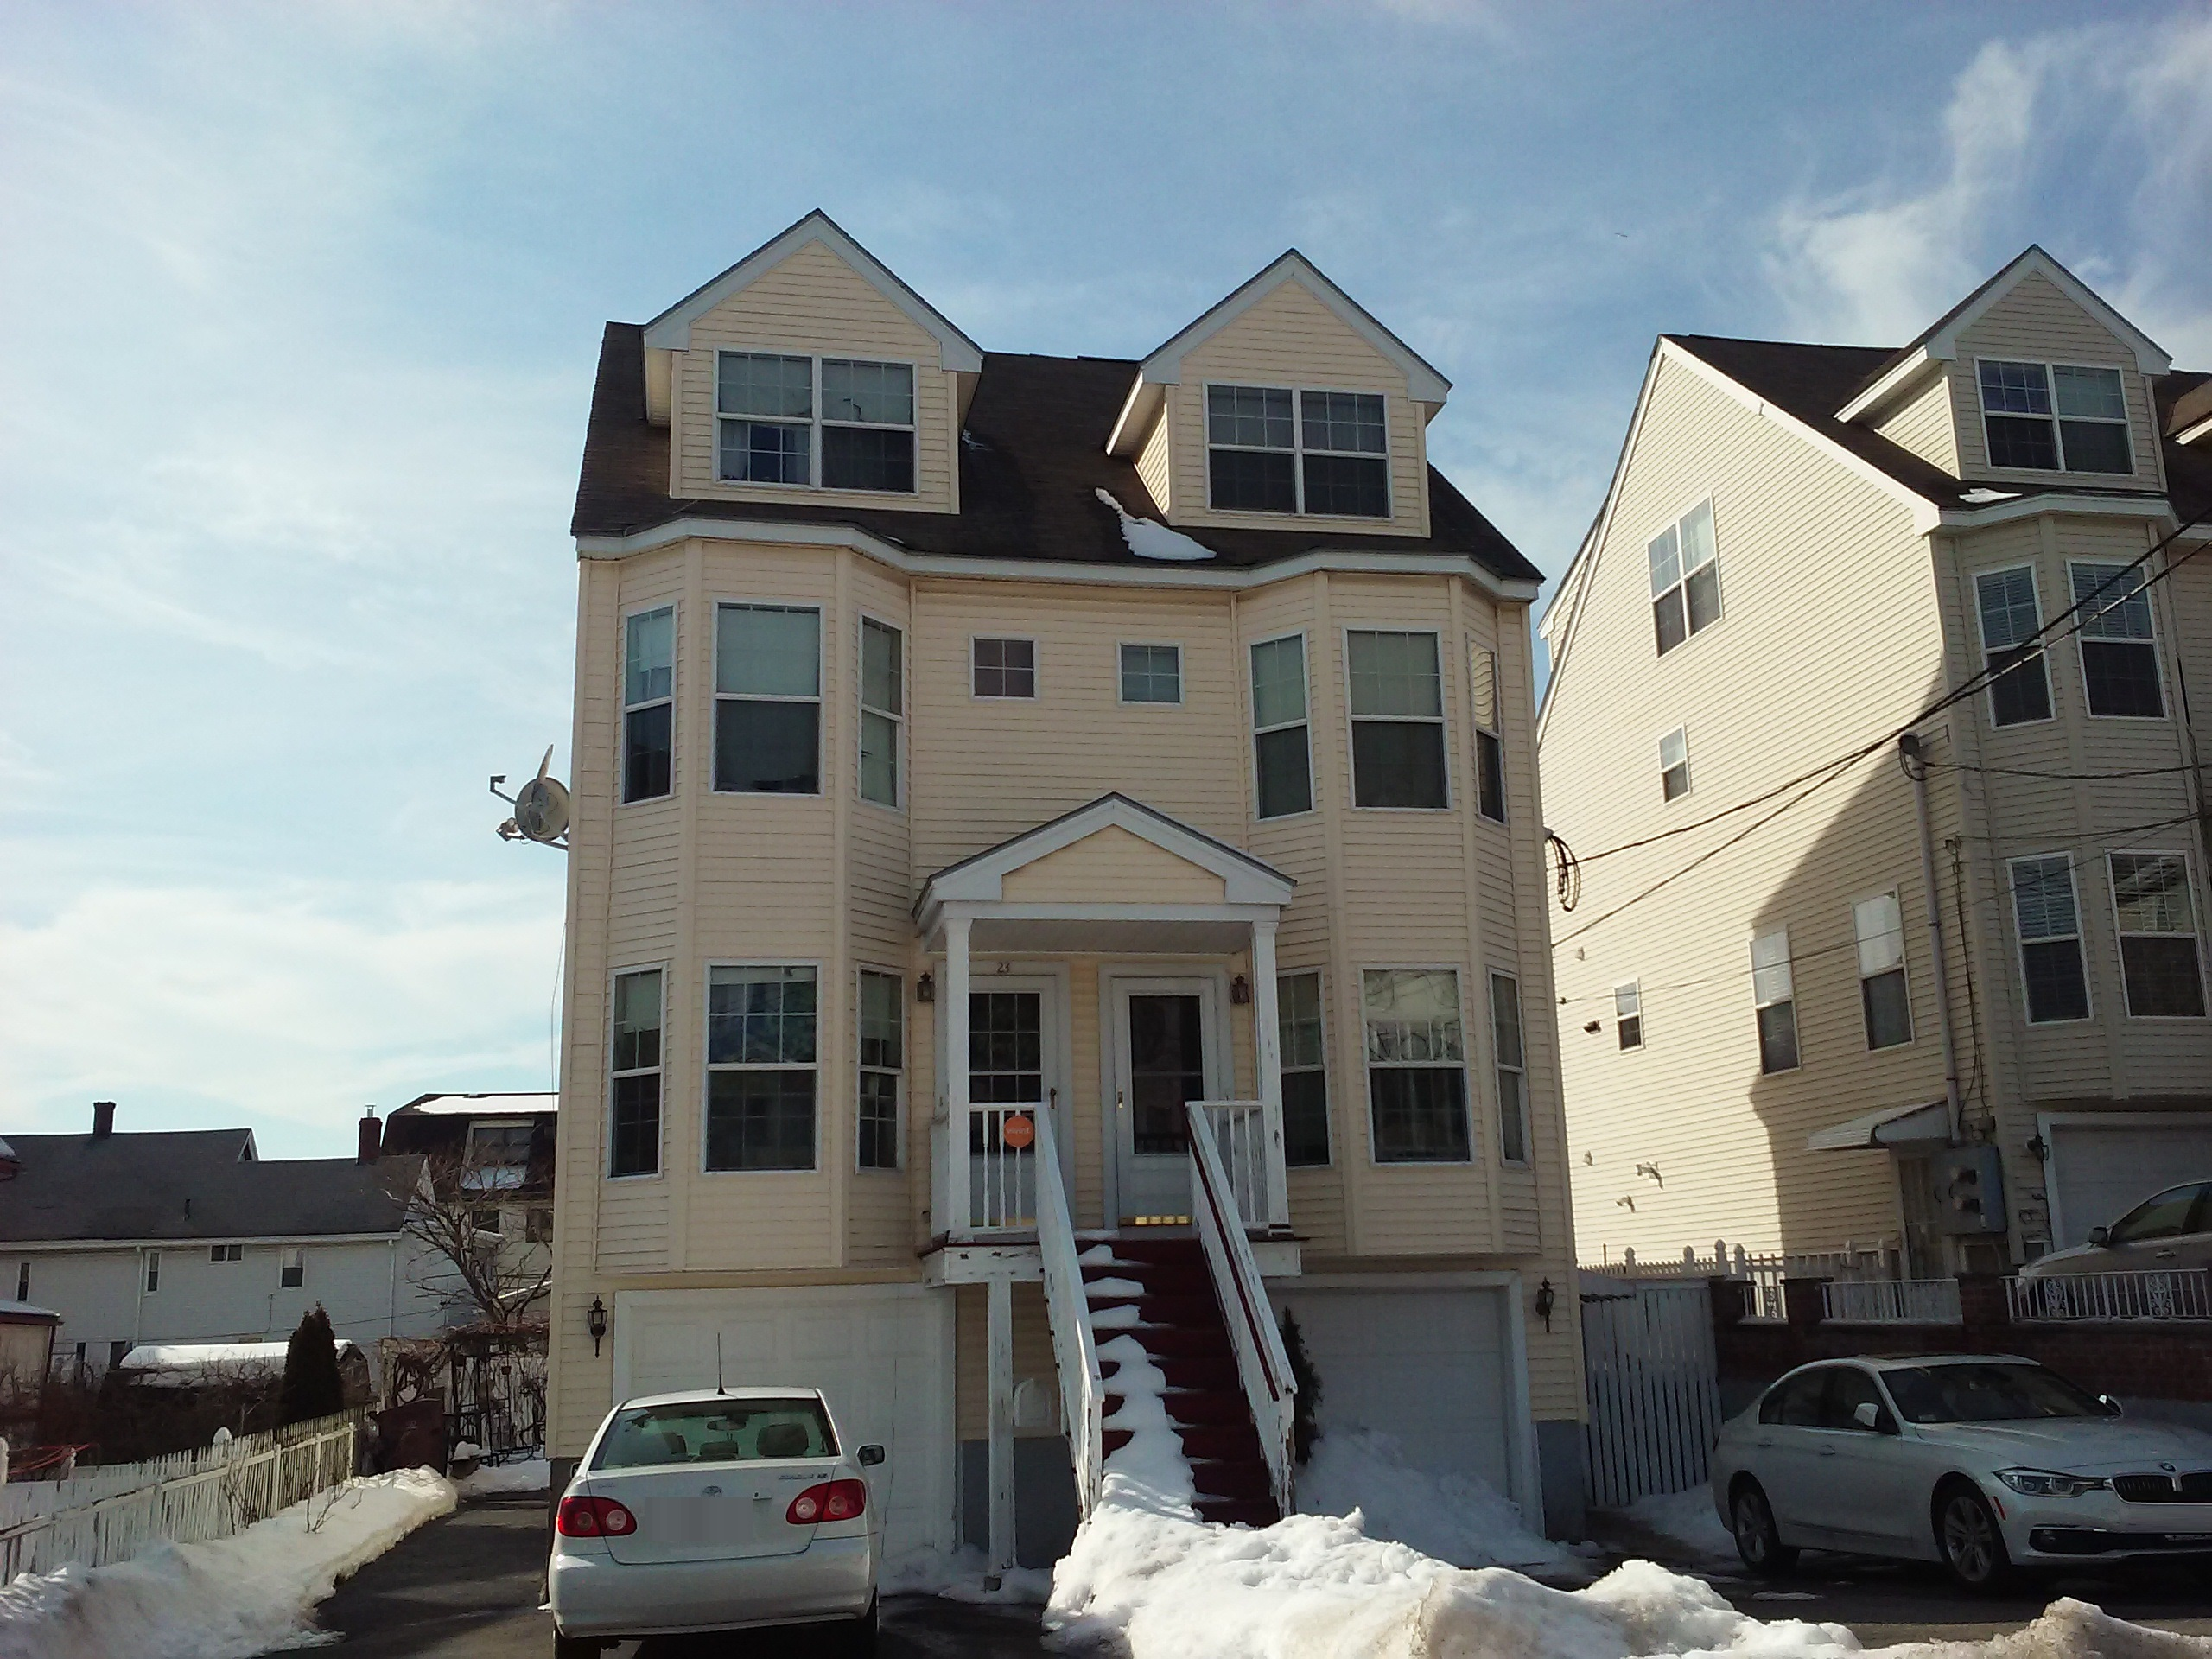 23 Otis St # 1, Everett, MA 02149